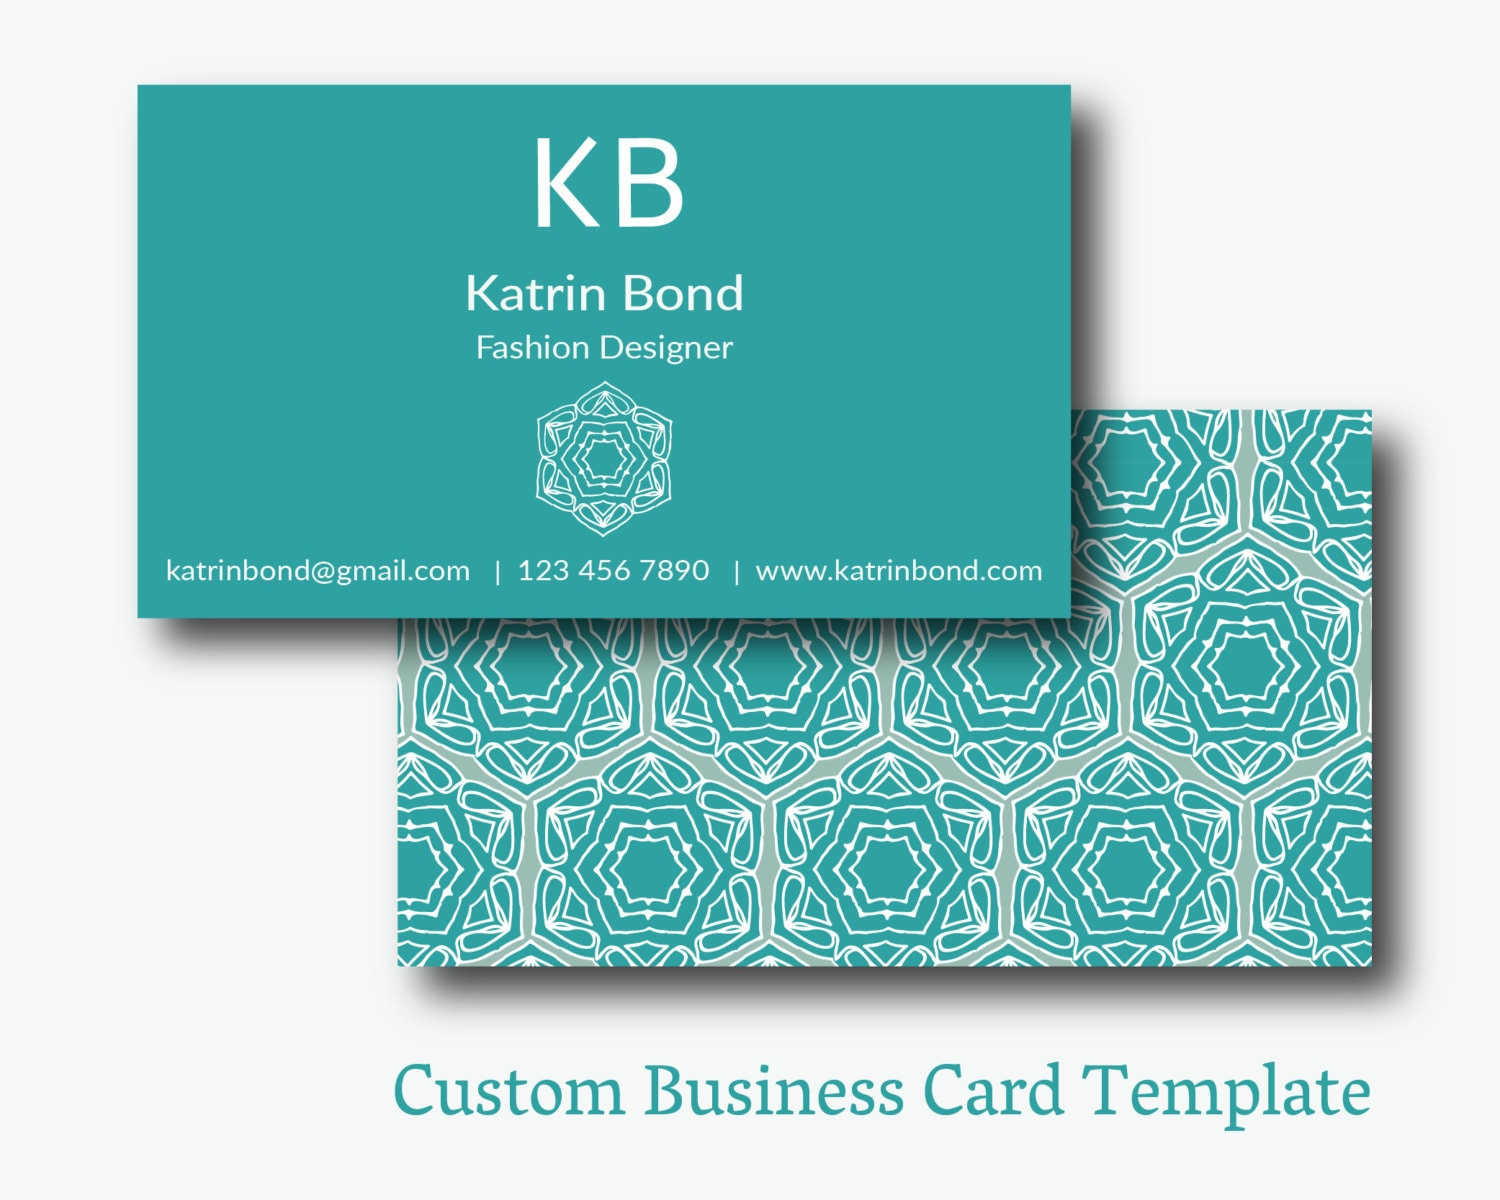 business card template calling cards custom business cards. Black Bedroom Furniture Sets. Home Design Ideas